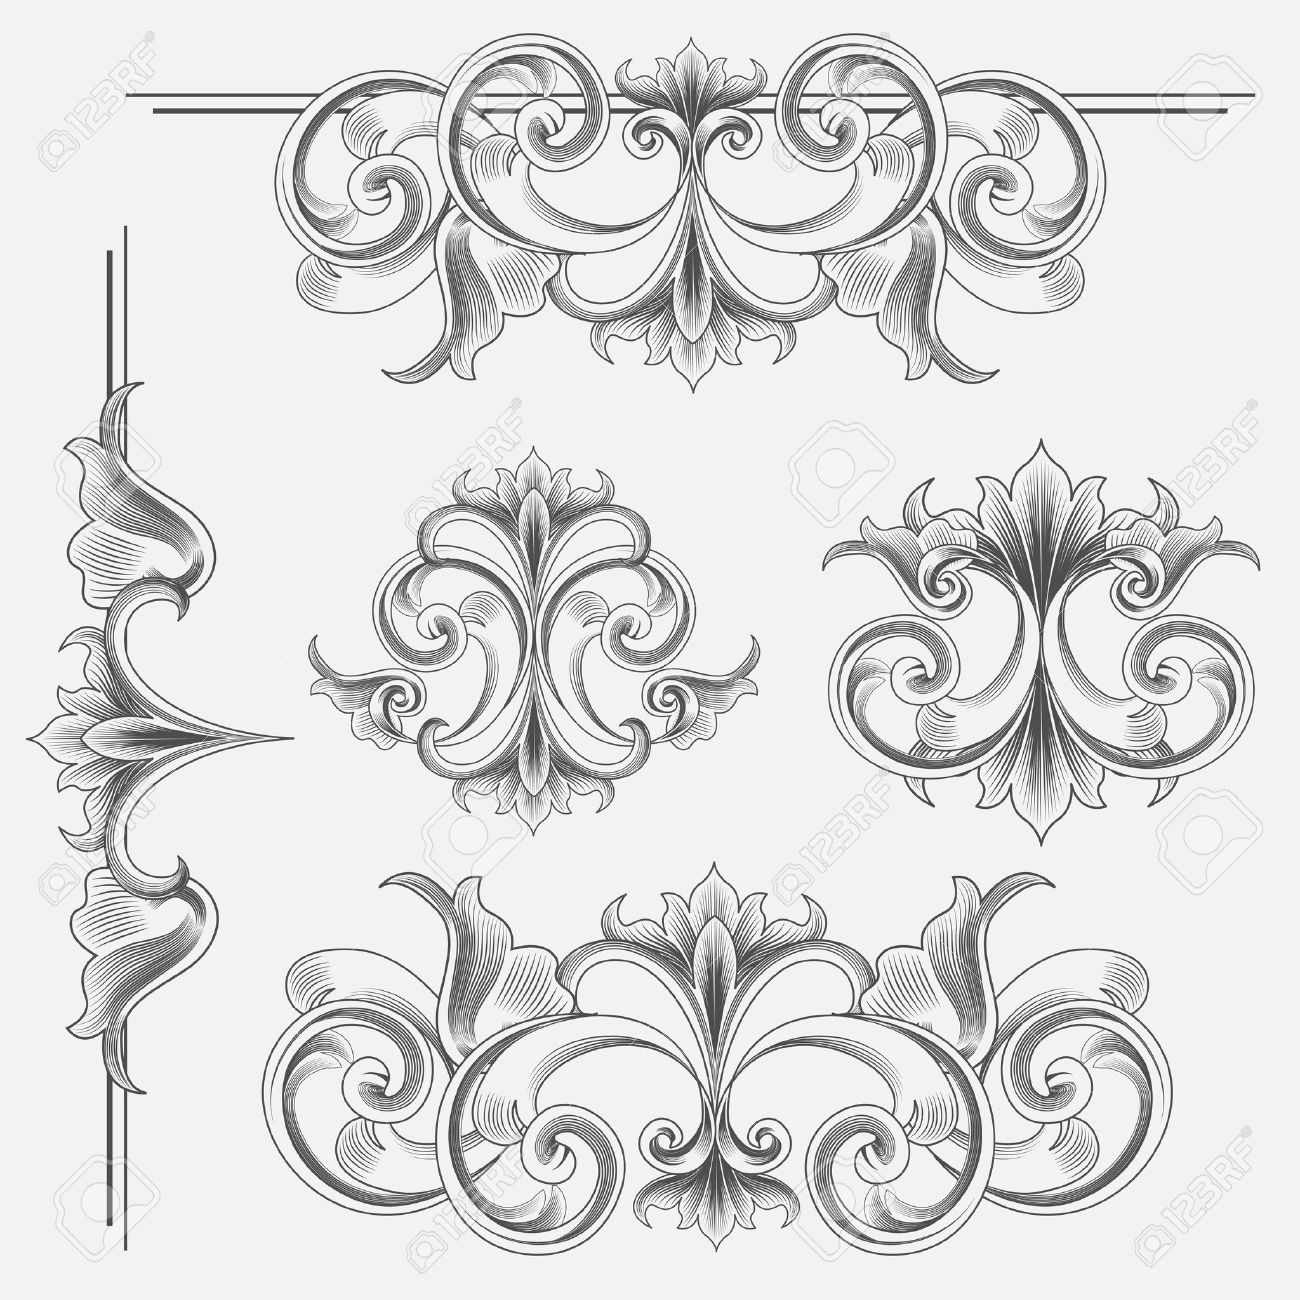 10392308 Set Of Victorian Style Decorations Stock Vector Ornament Floral Engraving Jpg 1300 1300 Victorian Fashion Art Clip Art